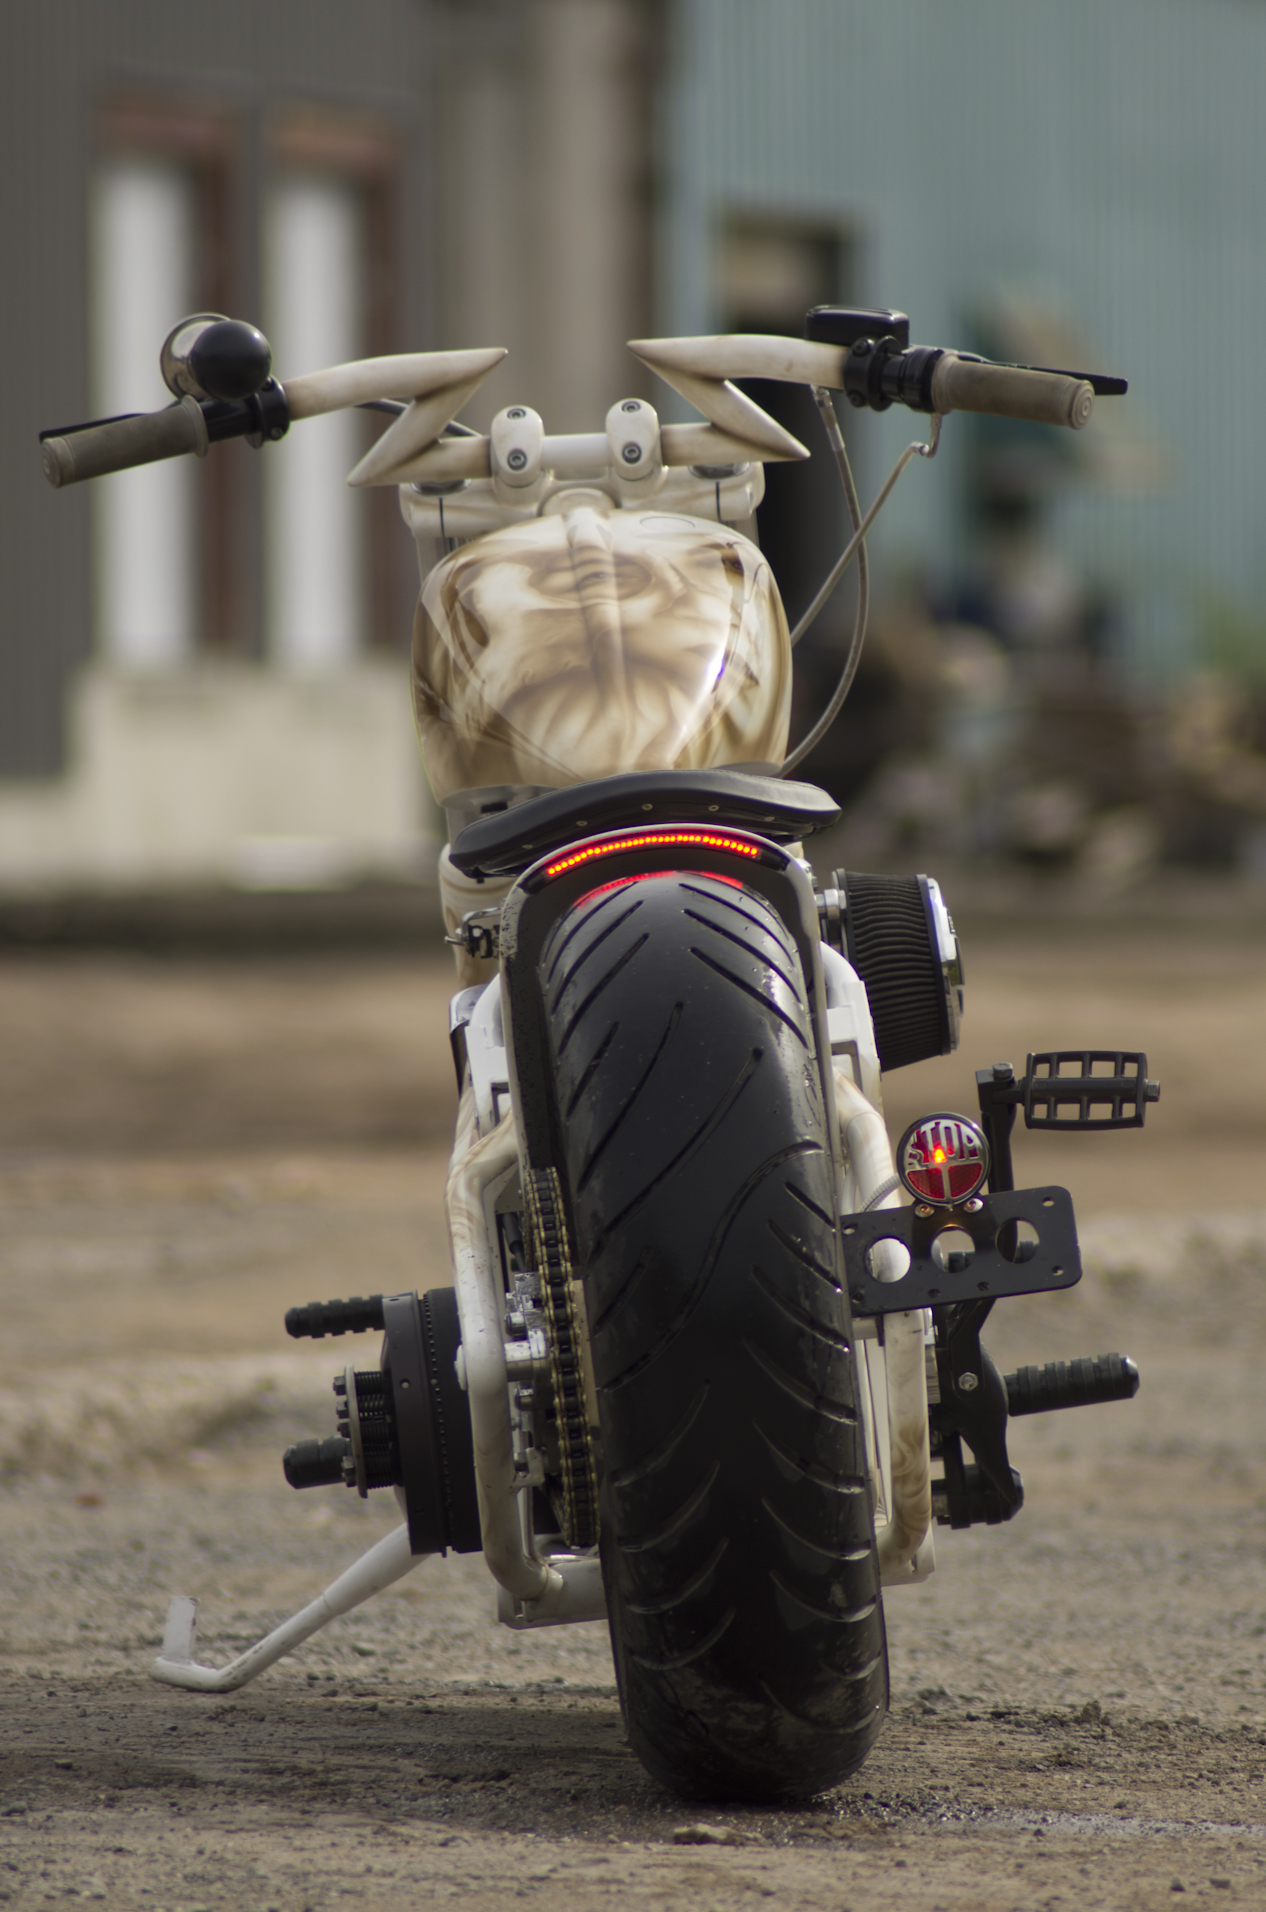 Jeff Thibault Hard Way Motorcycles_16